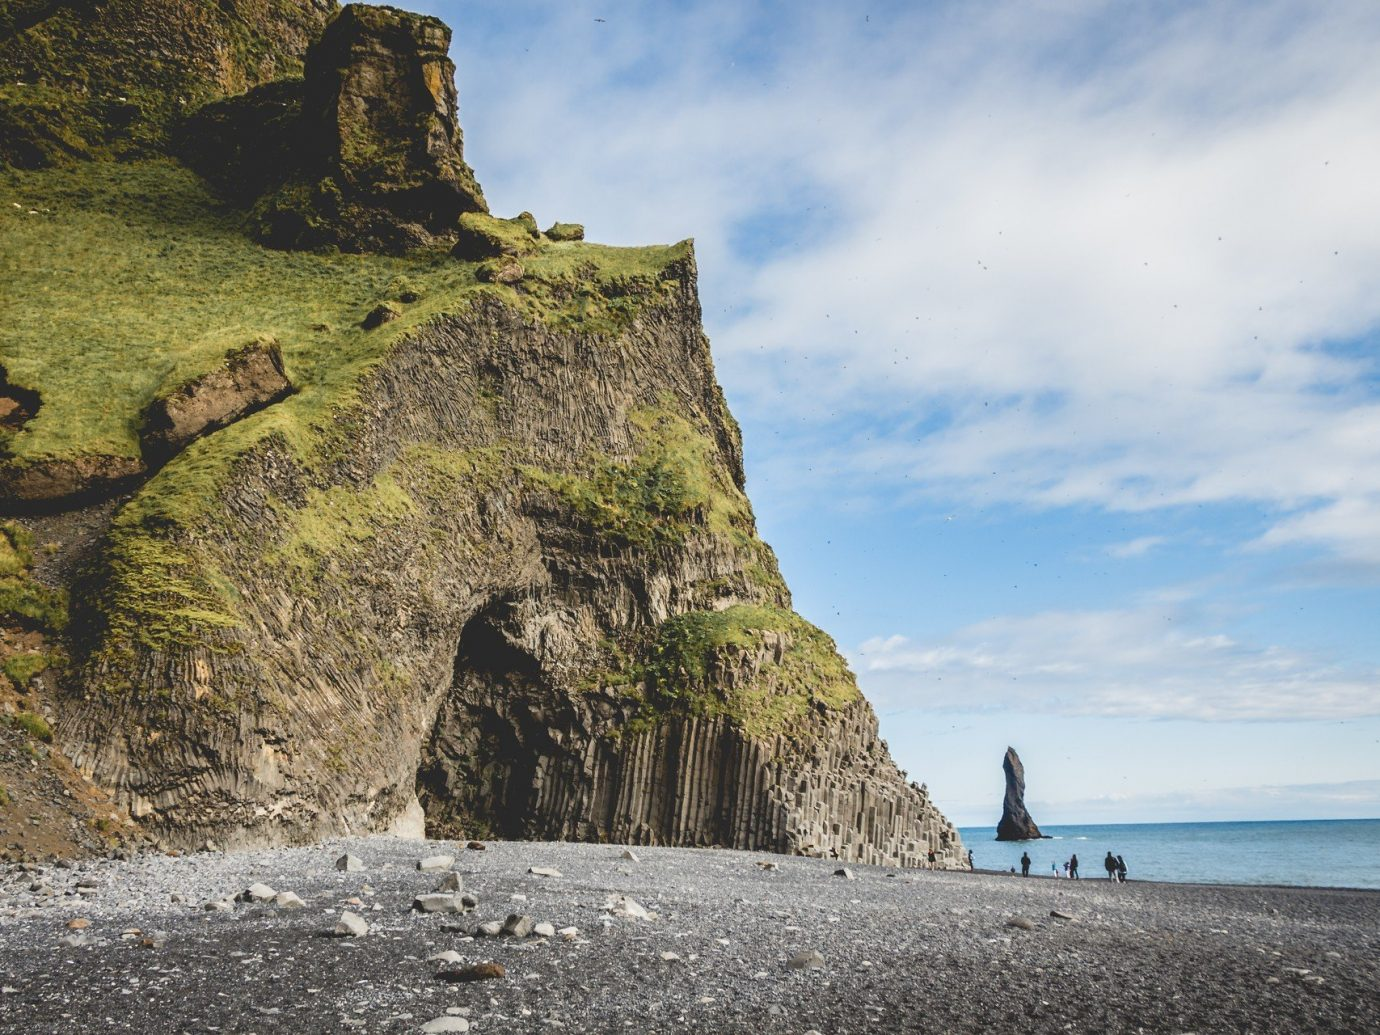 Adventure Beach black sand calm cave Greenery Hotels Iceland isolation Luxury Travel Nature Ocean Outdoor Activities people remote rock Rocks sand serene Travel Tips Trip Ideas outdoor Sea Coast cliff body of water shore vacation terrain cape tower bay material Ruins